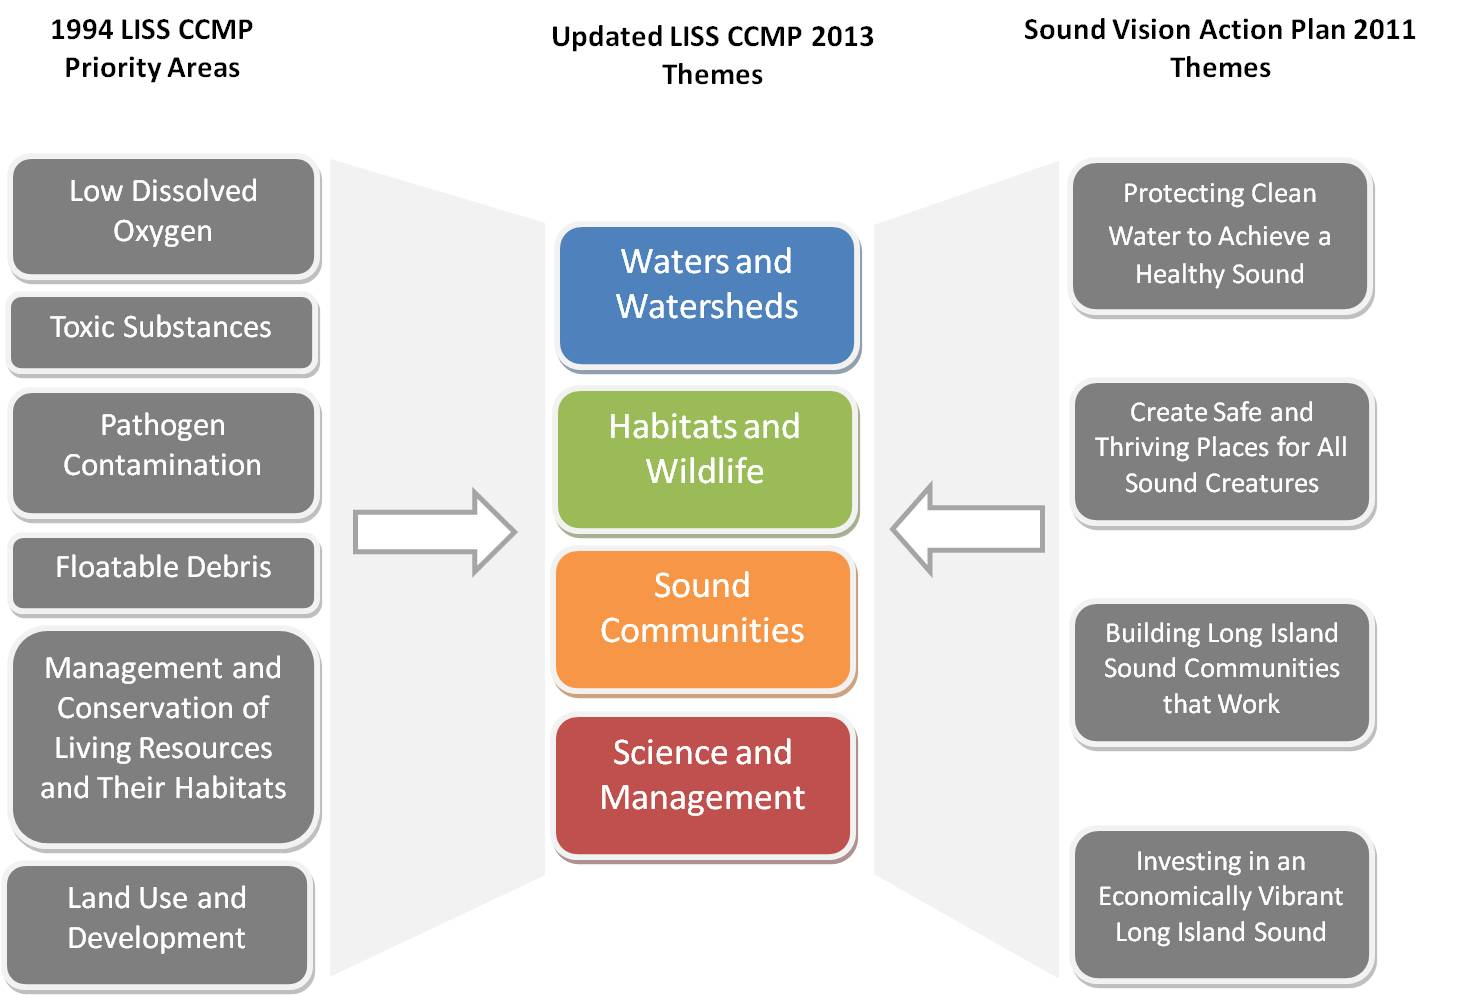 Four themes emerged in the Long Island Sound Study's CCMP.